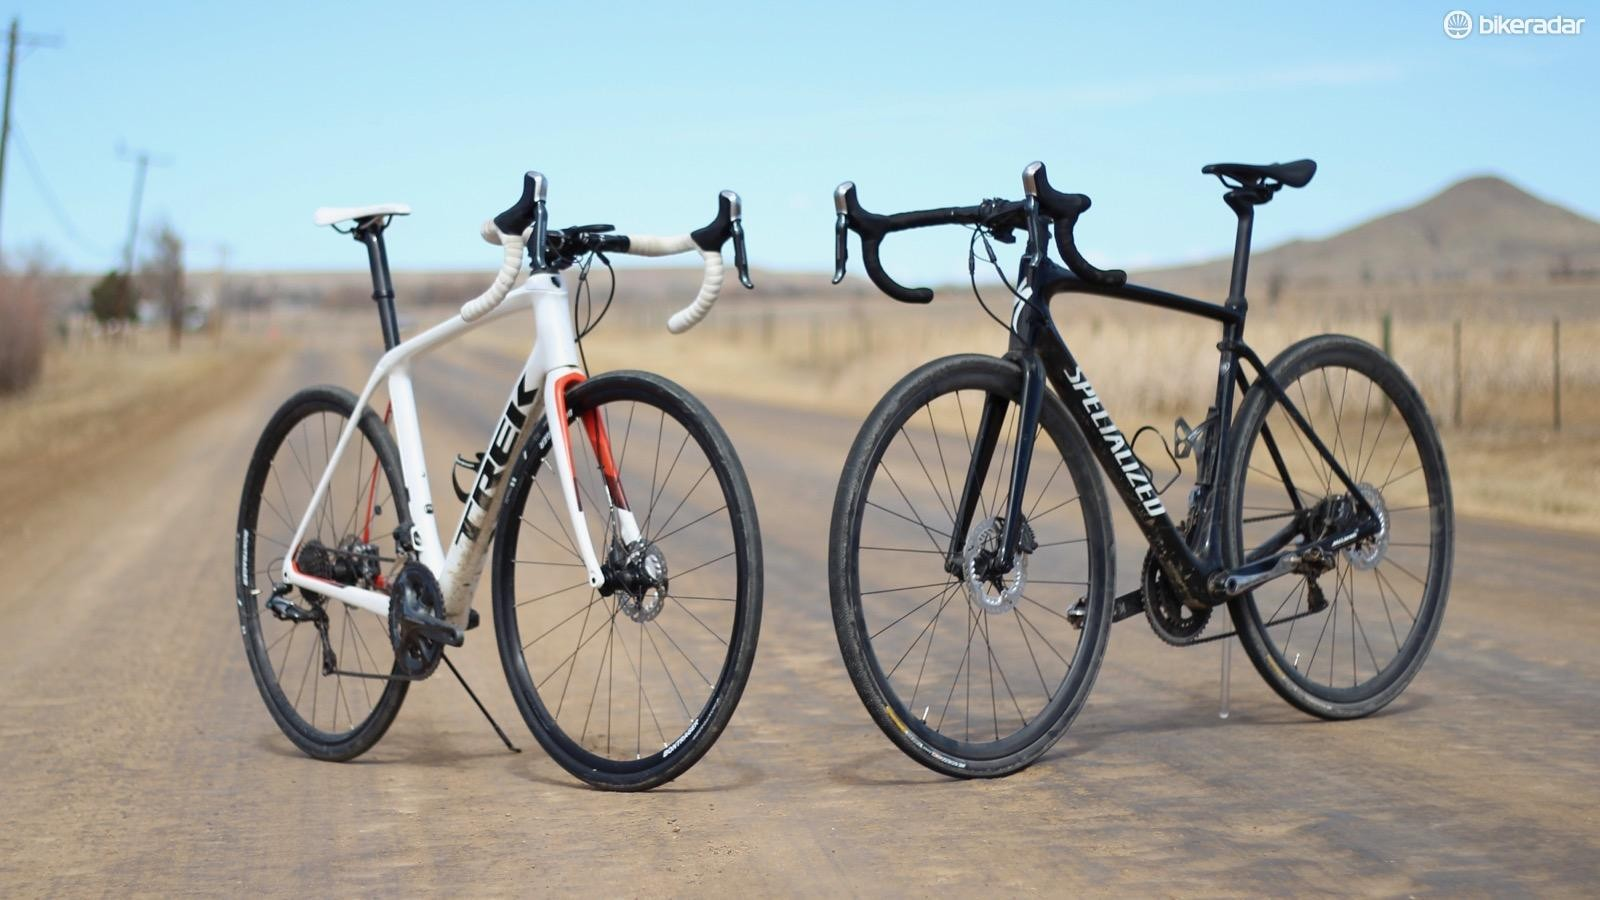 The Trek Domane SLR and the Specialized Roubaix are the two heavyweights for plush endurance rides on varied road surfaces